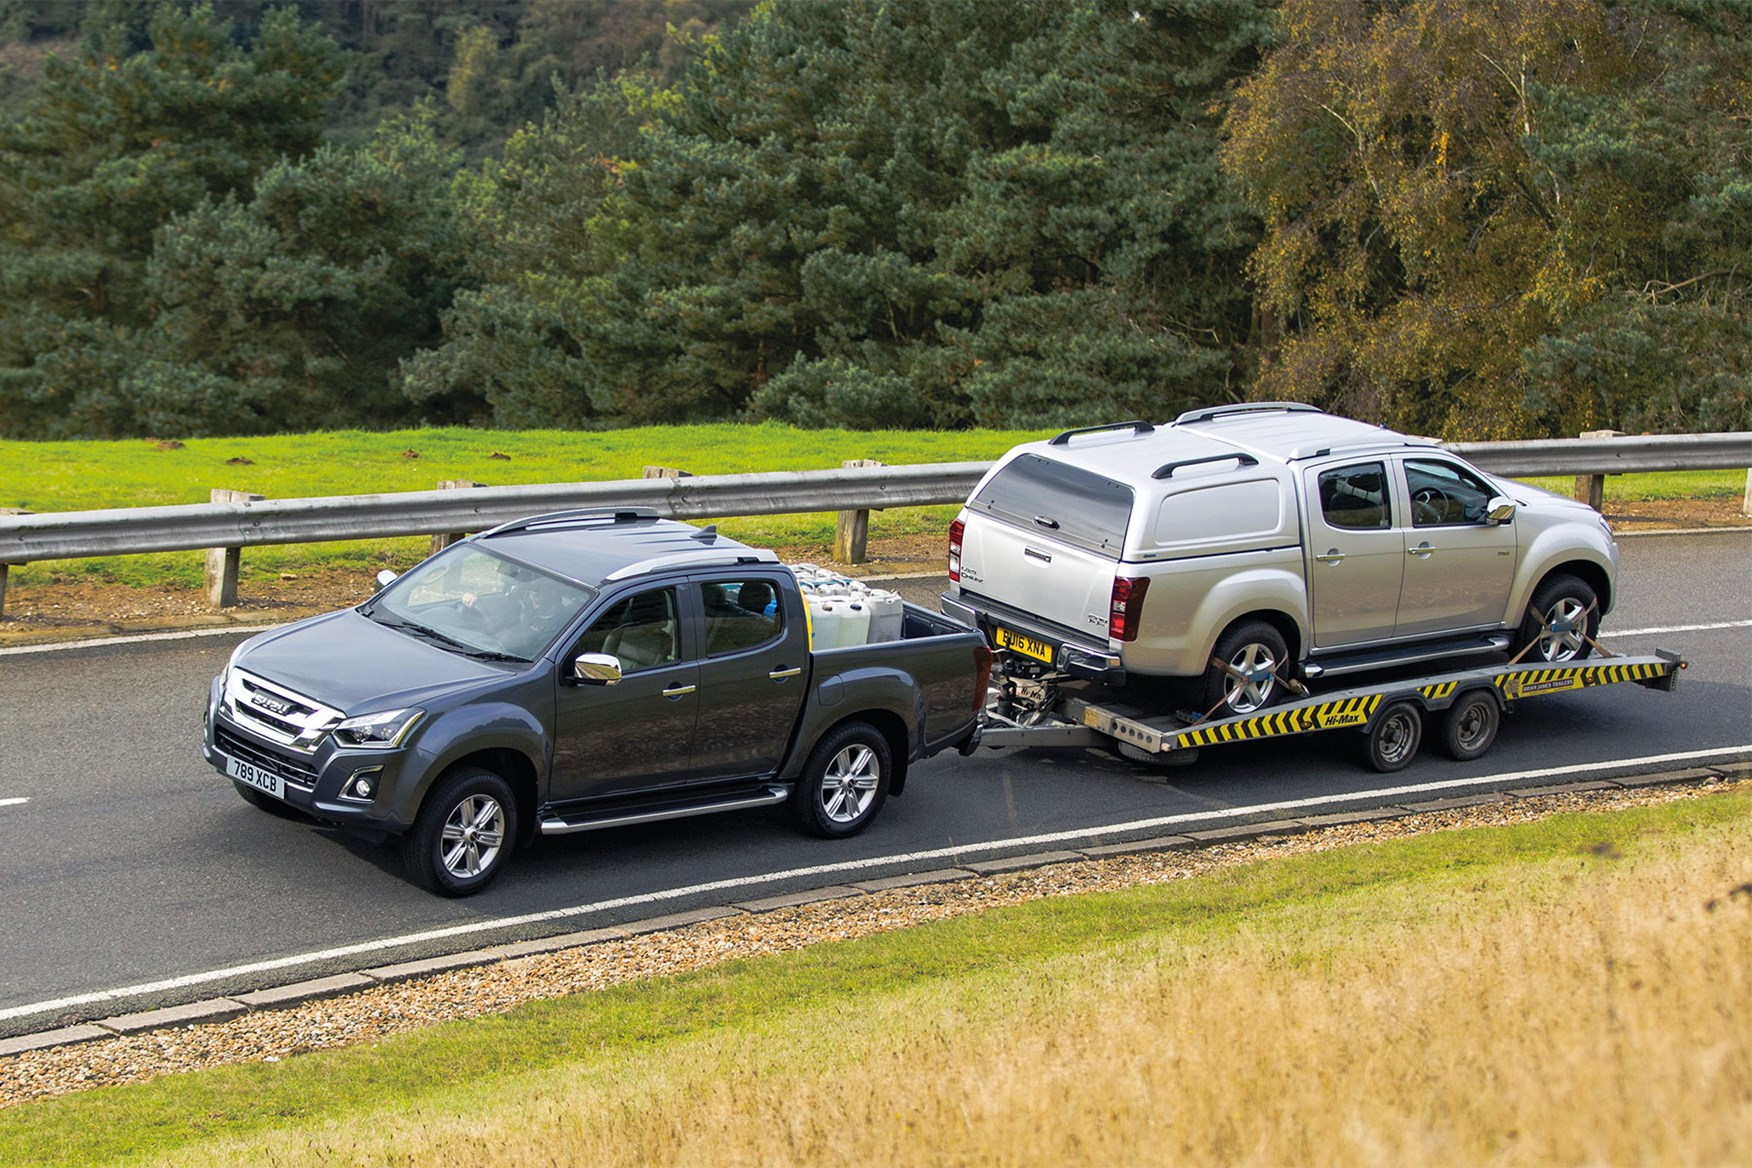 Isuzu D-Max towing capacity - towing another D-Max on a trailer